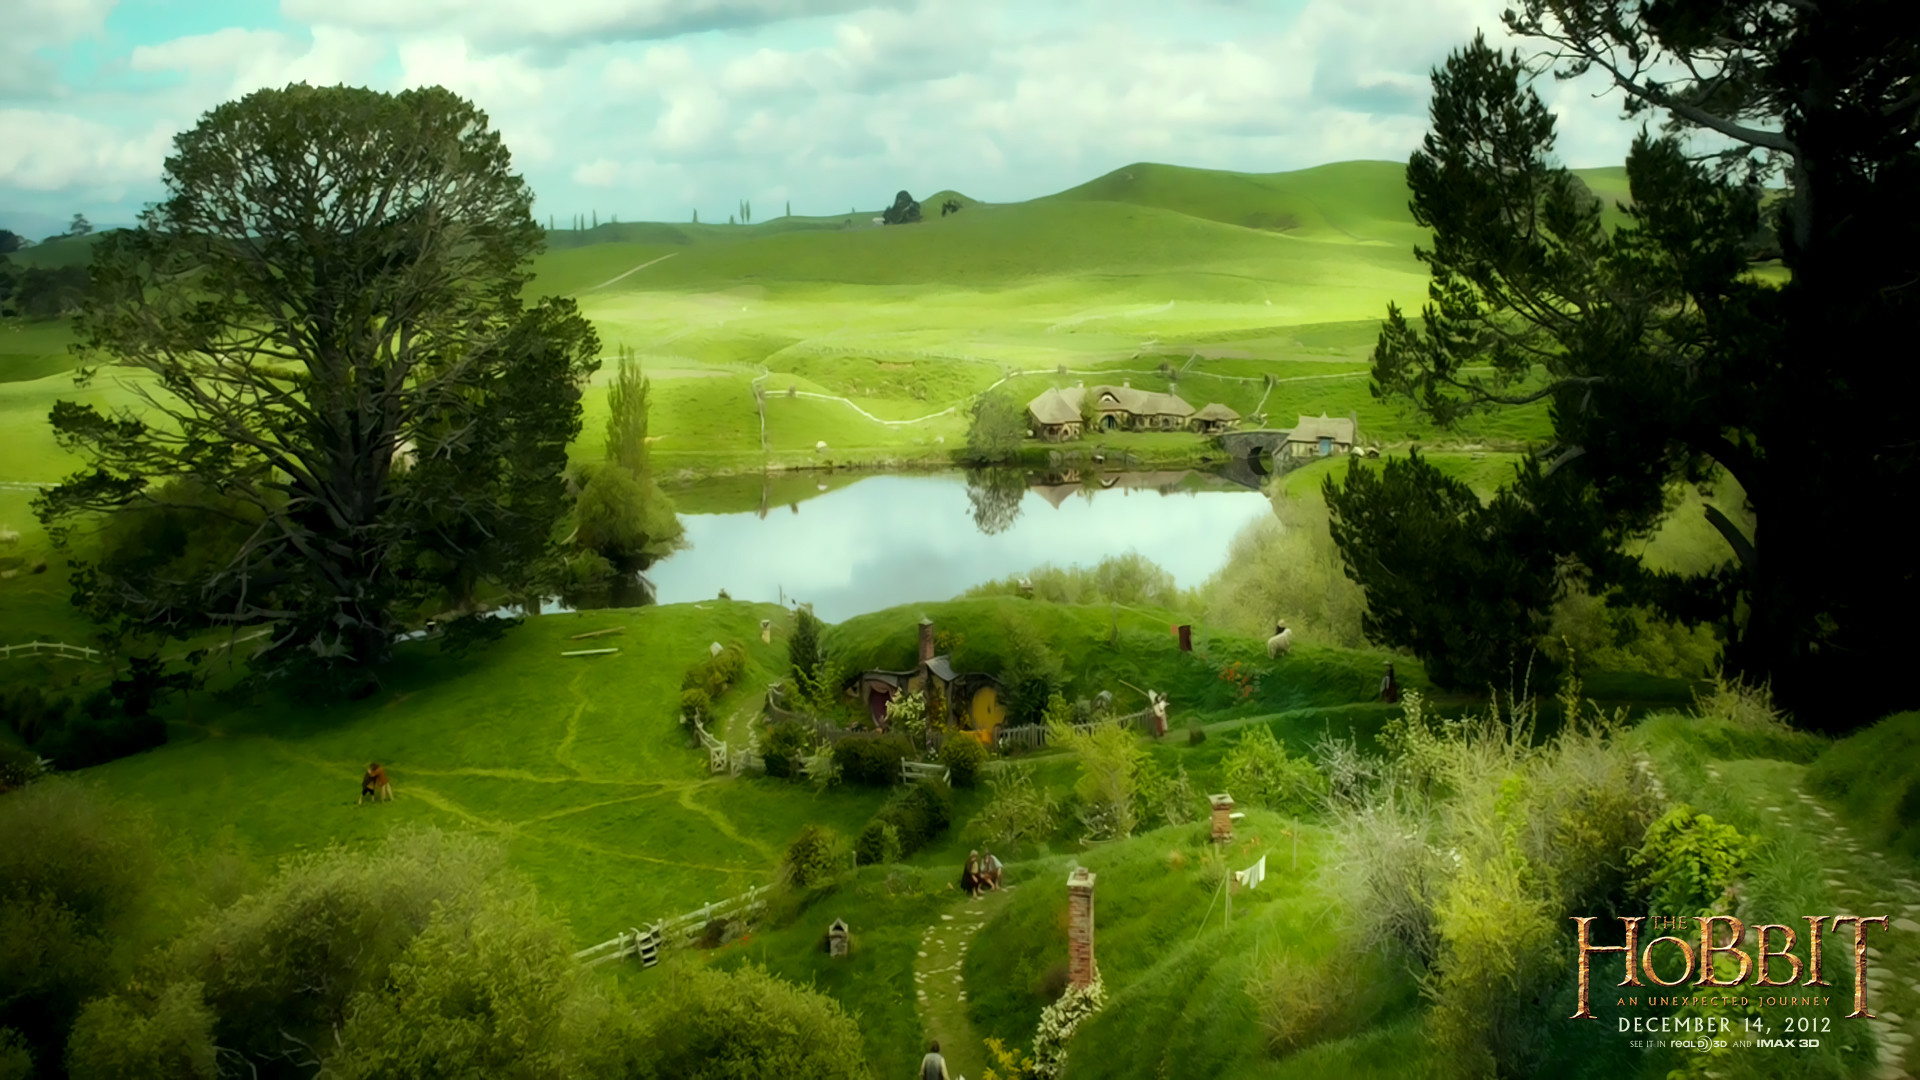 Lord Of The Rings Shire Desktop Background Wallpapers High Resolution Wallpaper  px 1.09 MB